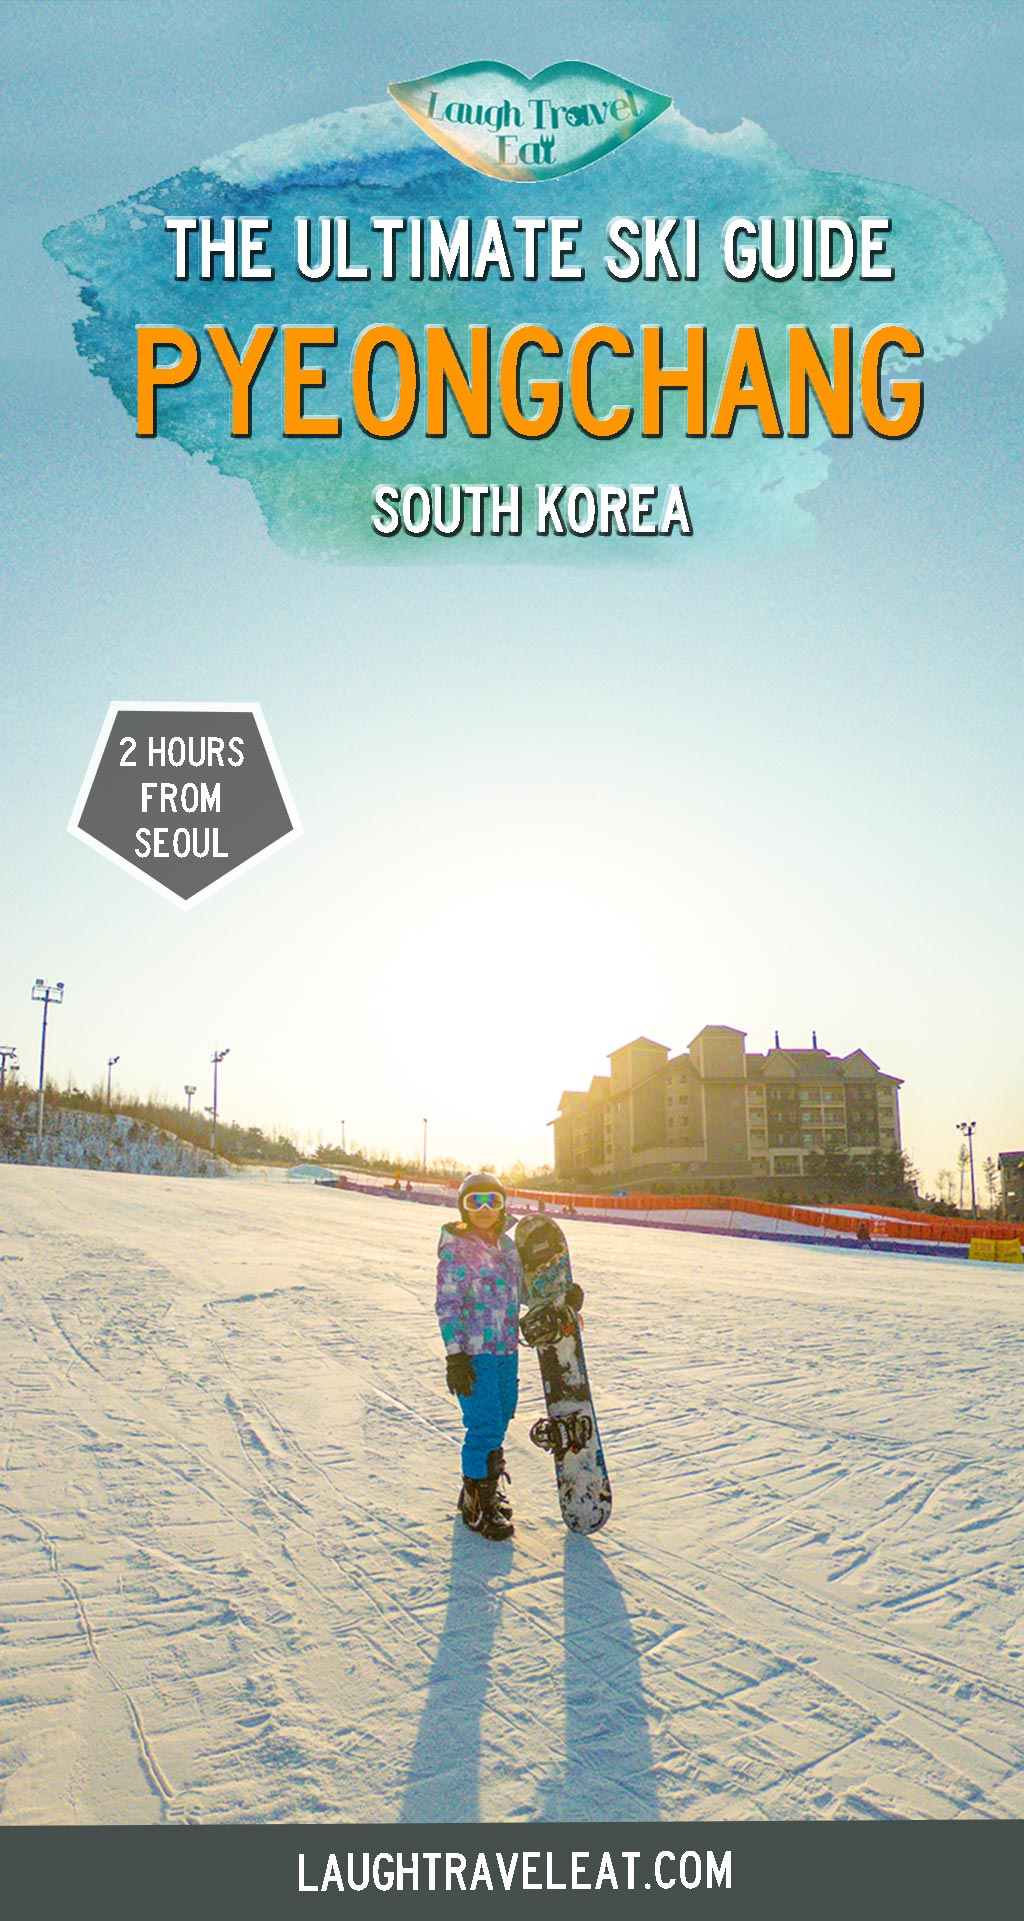 South Korea is one of the most popular ski destinations in Asia alongside Japan with the 2018 Winter Olympics being held in PyeongChang. Excited to go on my first ski trip, I ended up choosing PyeongChang and here's what it's like to winter away in a South Korea Ski Resort: #southkorea #ski #snowboard #wintertrip #pyeongchang